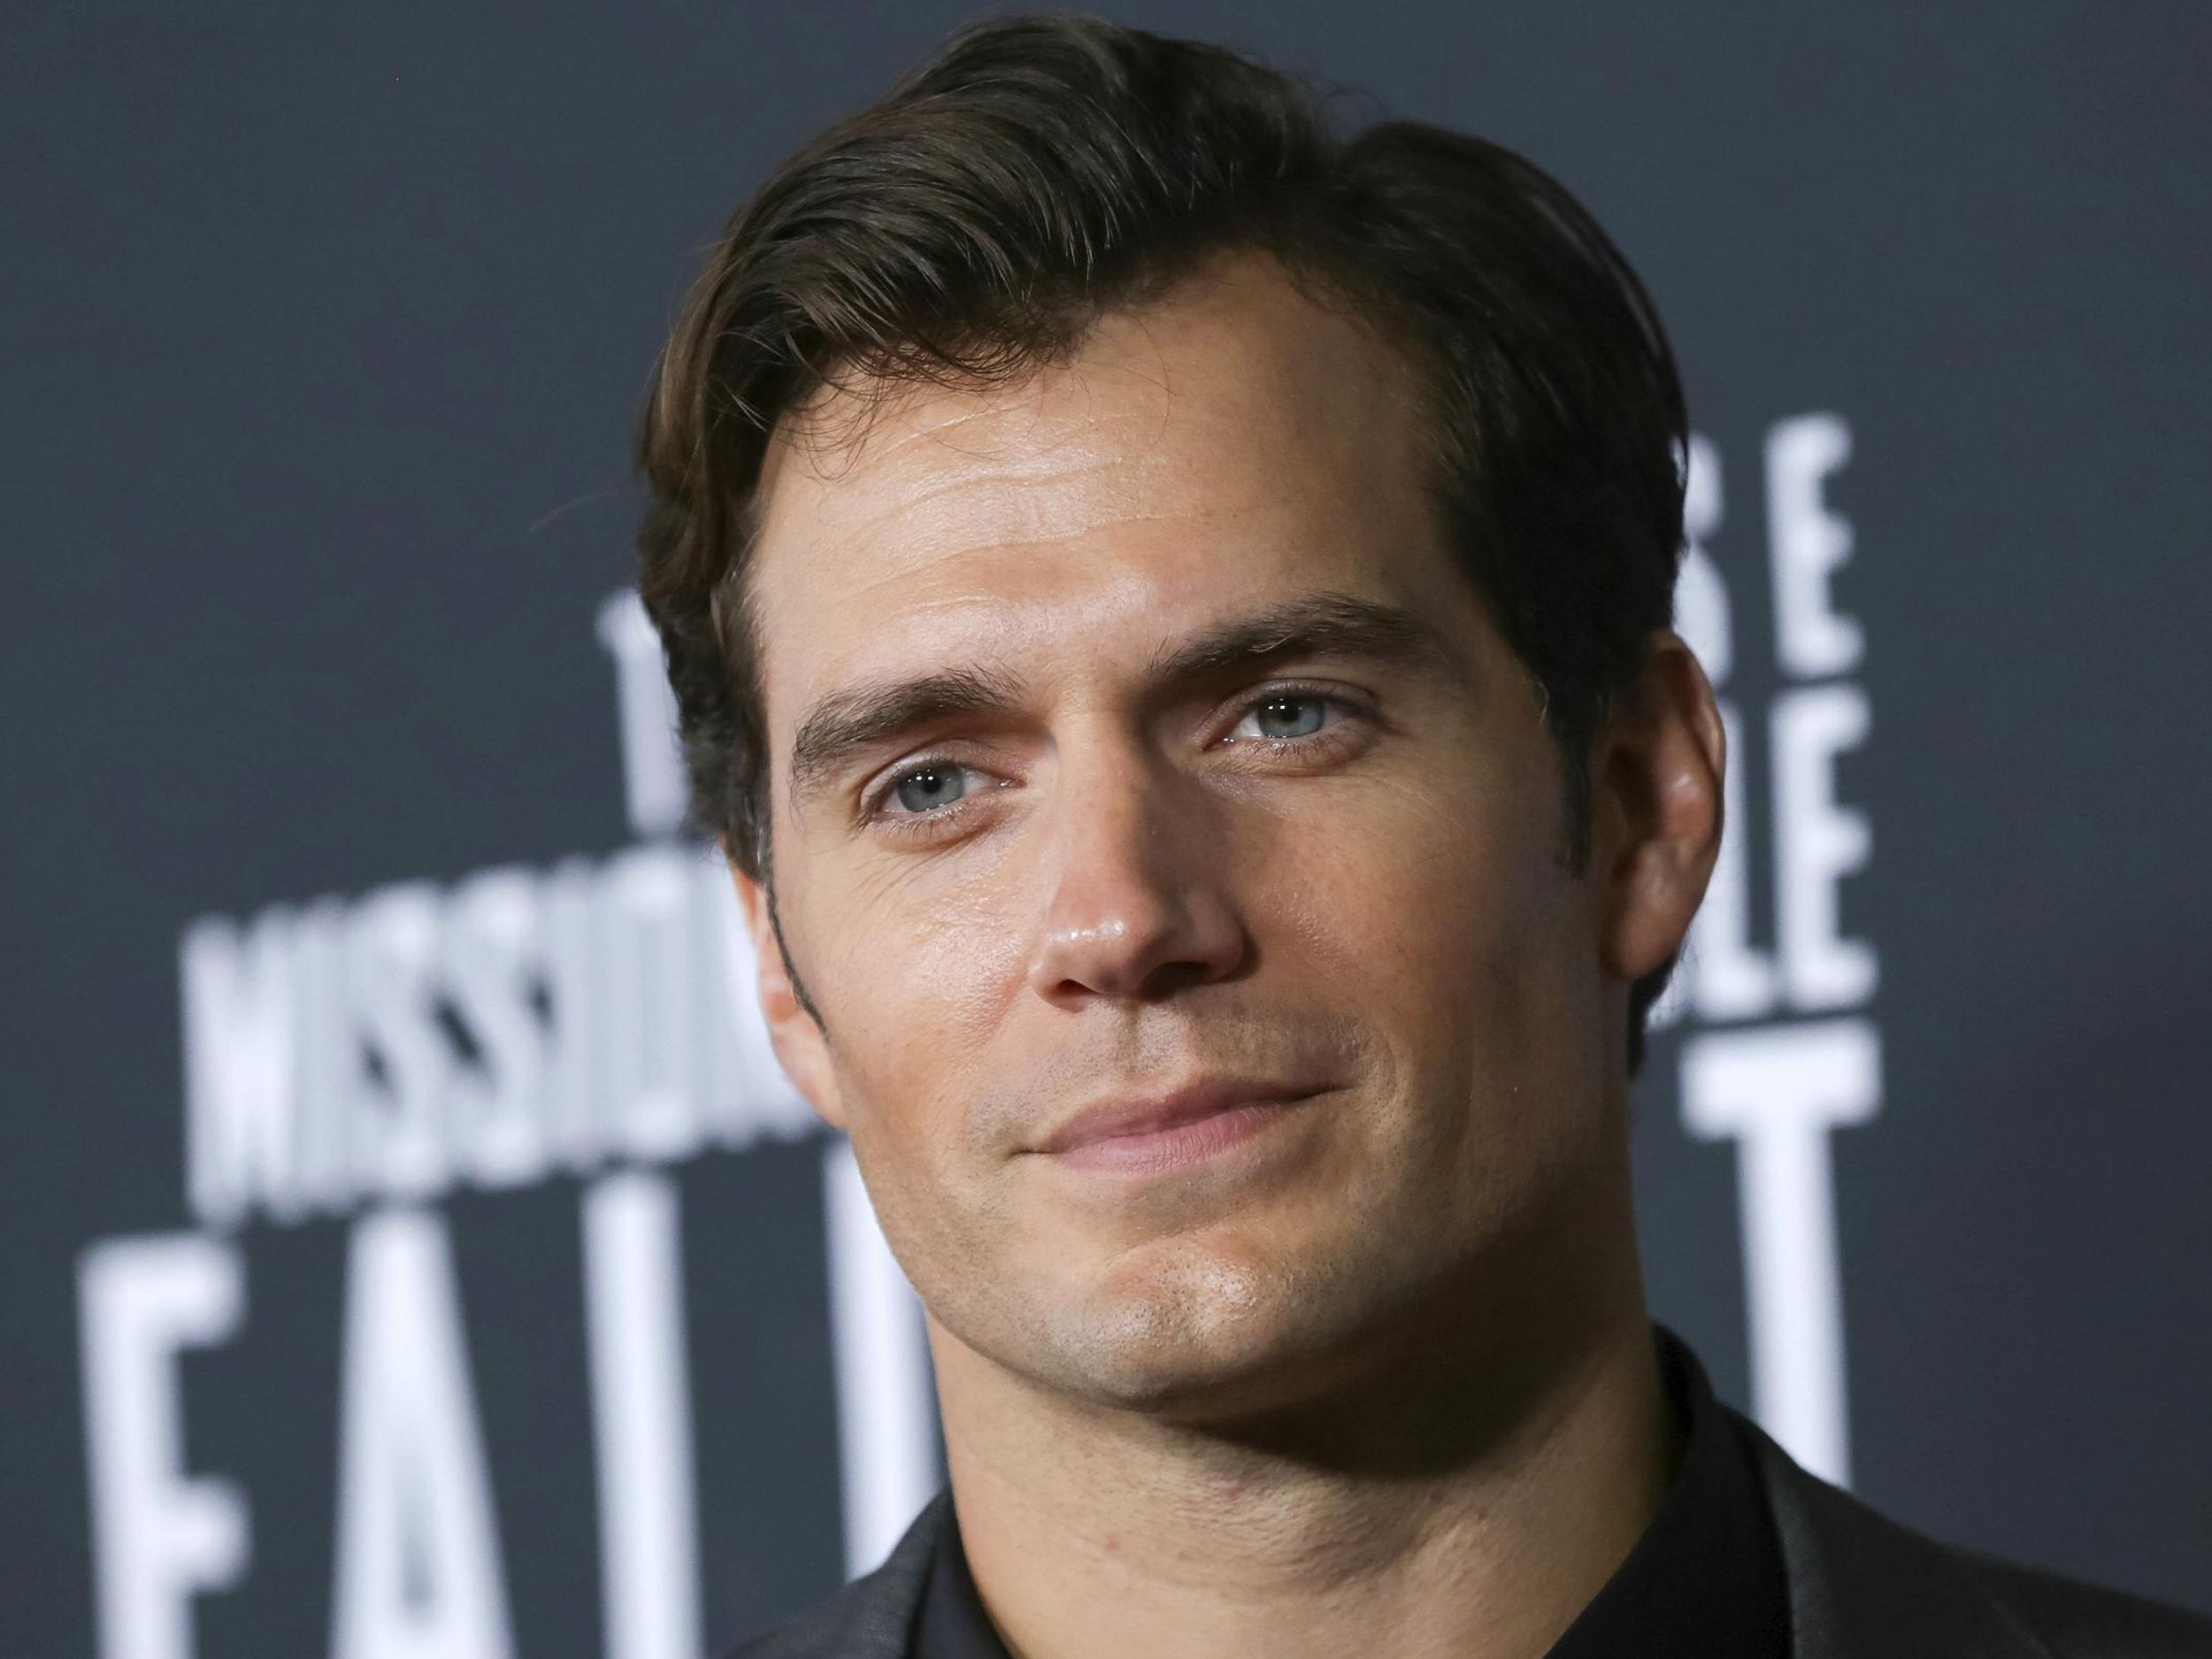 Henry Cavill Net Worth 2021 - The Event Chronicle